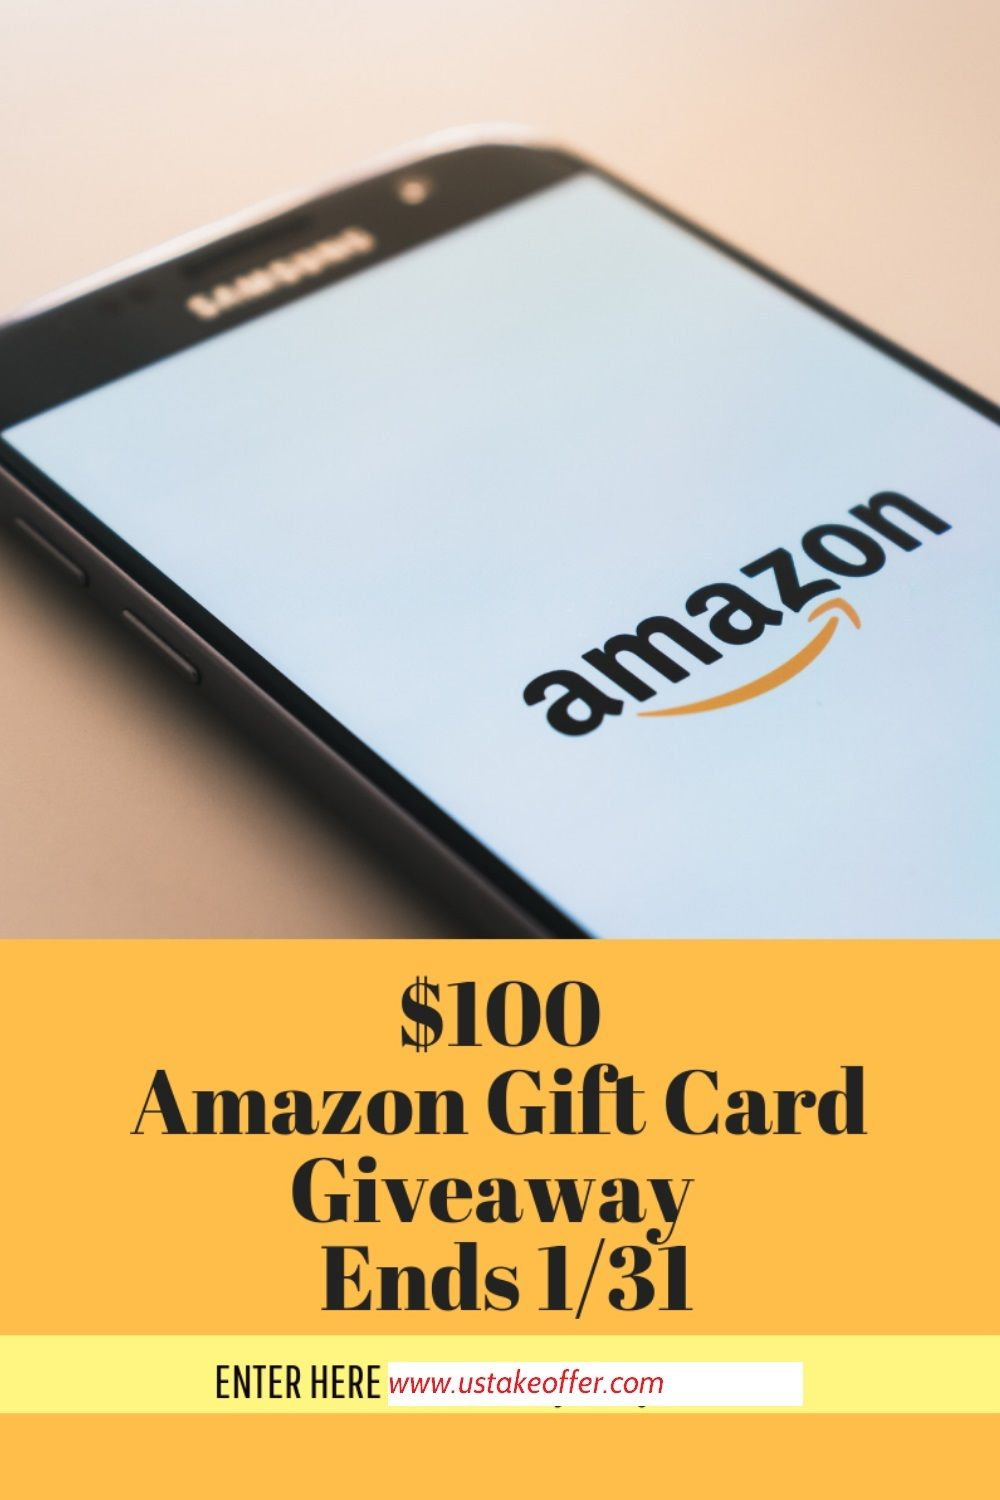 Amazon Gift Cards Can Be Utilized To Recovered Kindle Content